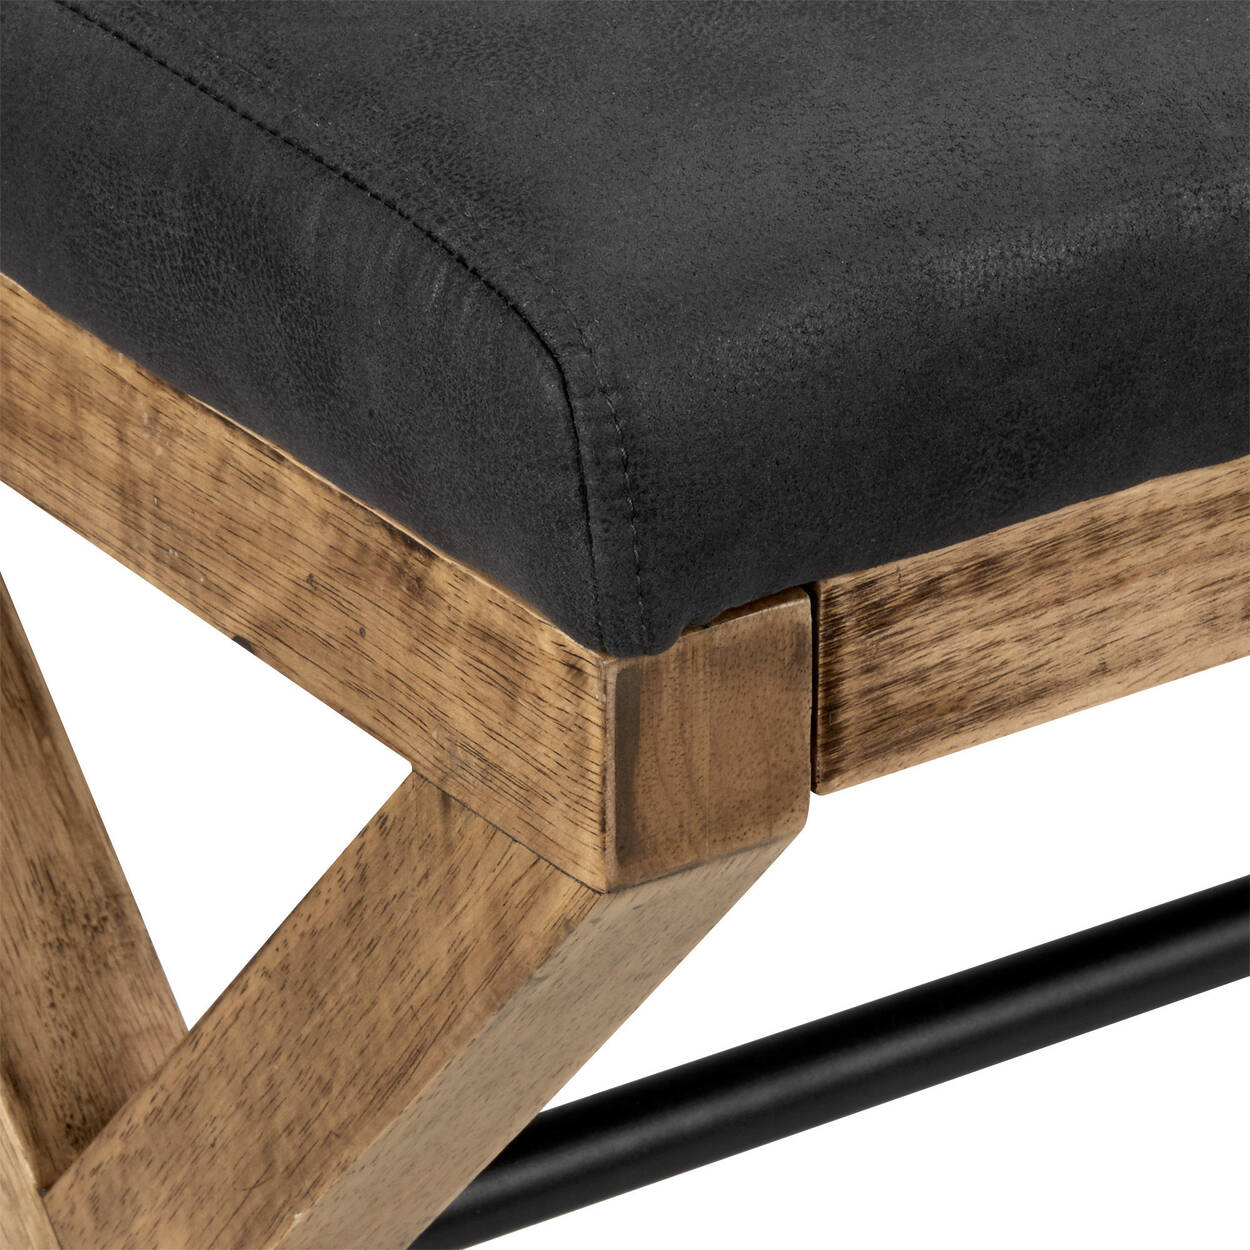 Textured Faux Leather Bench With Wood Base